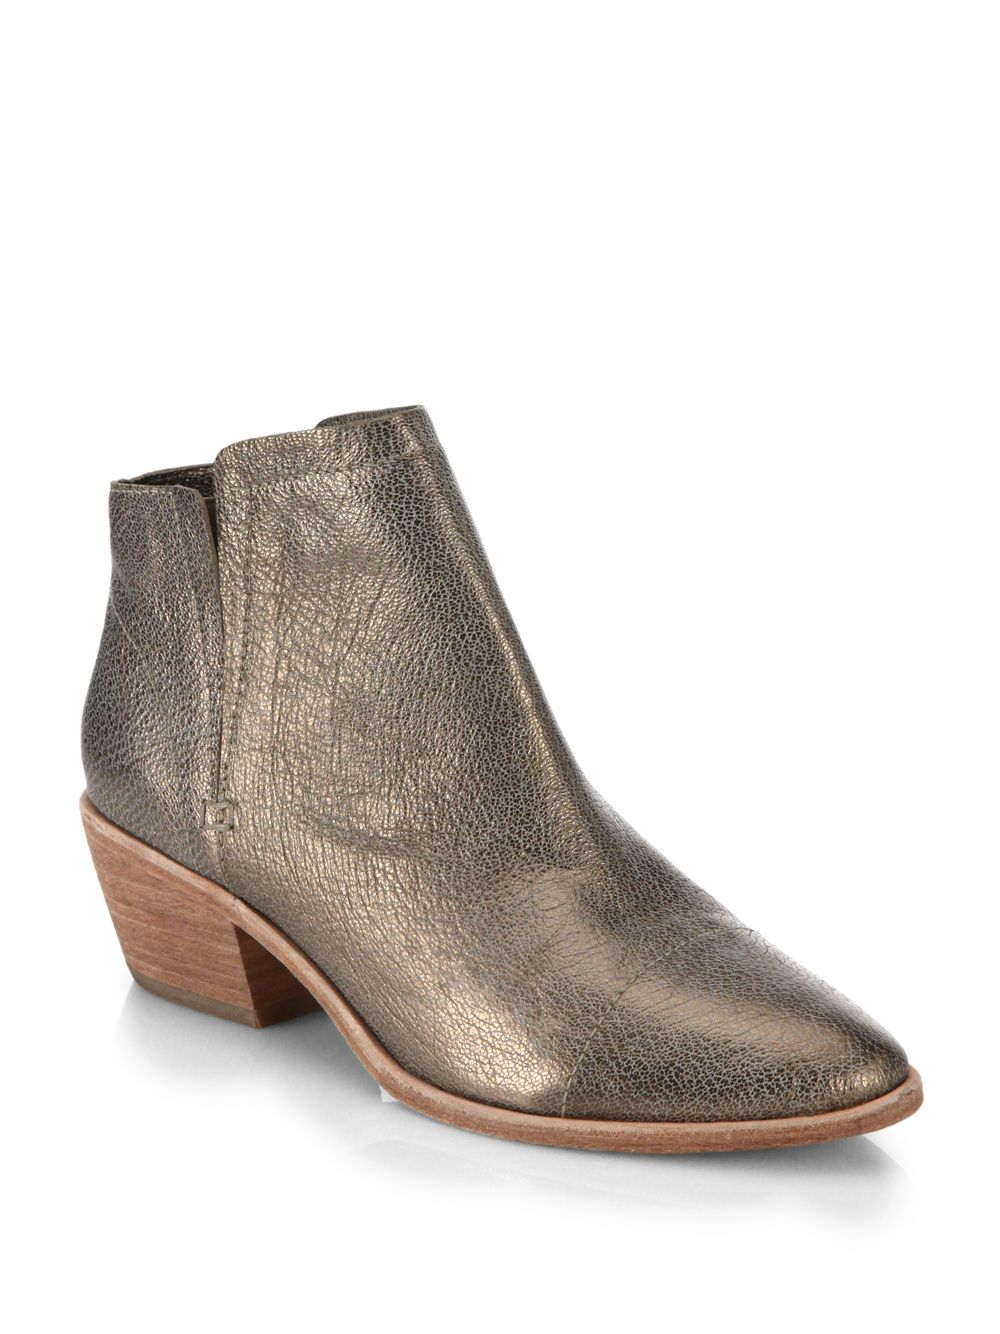 Metallic Leather Boots : Joie jodi metallic leather ankle boots lyst